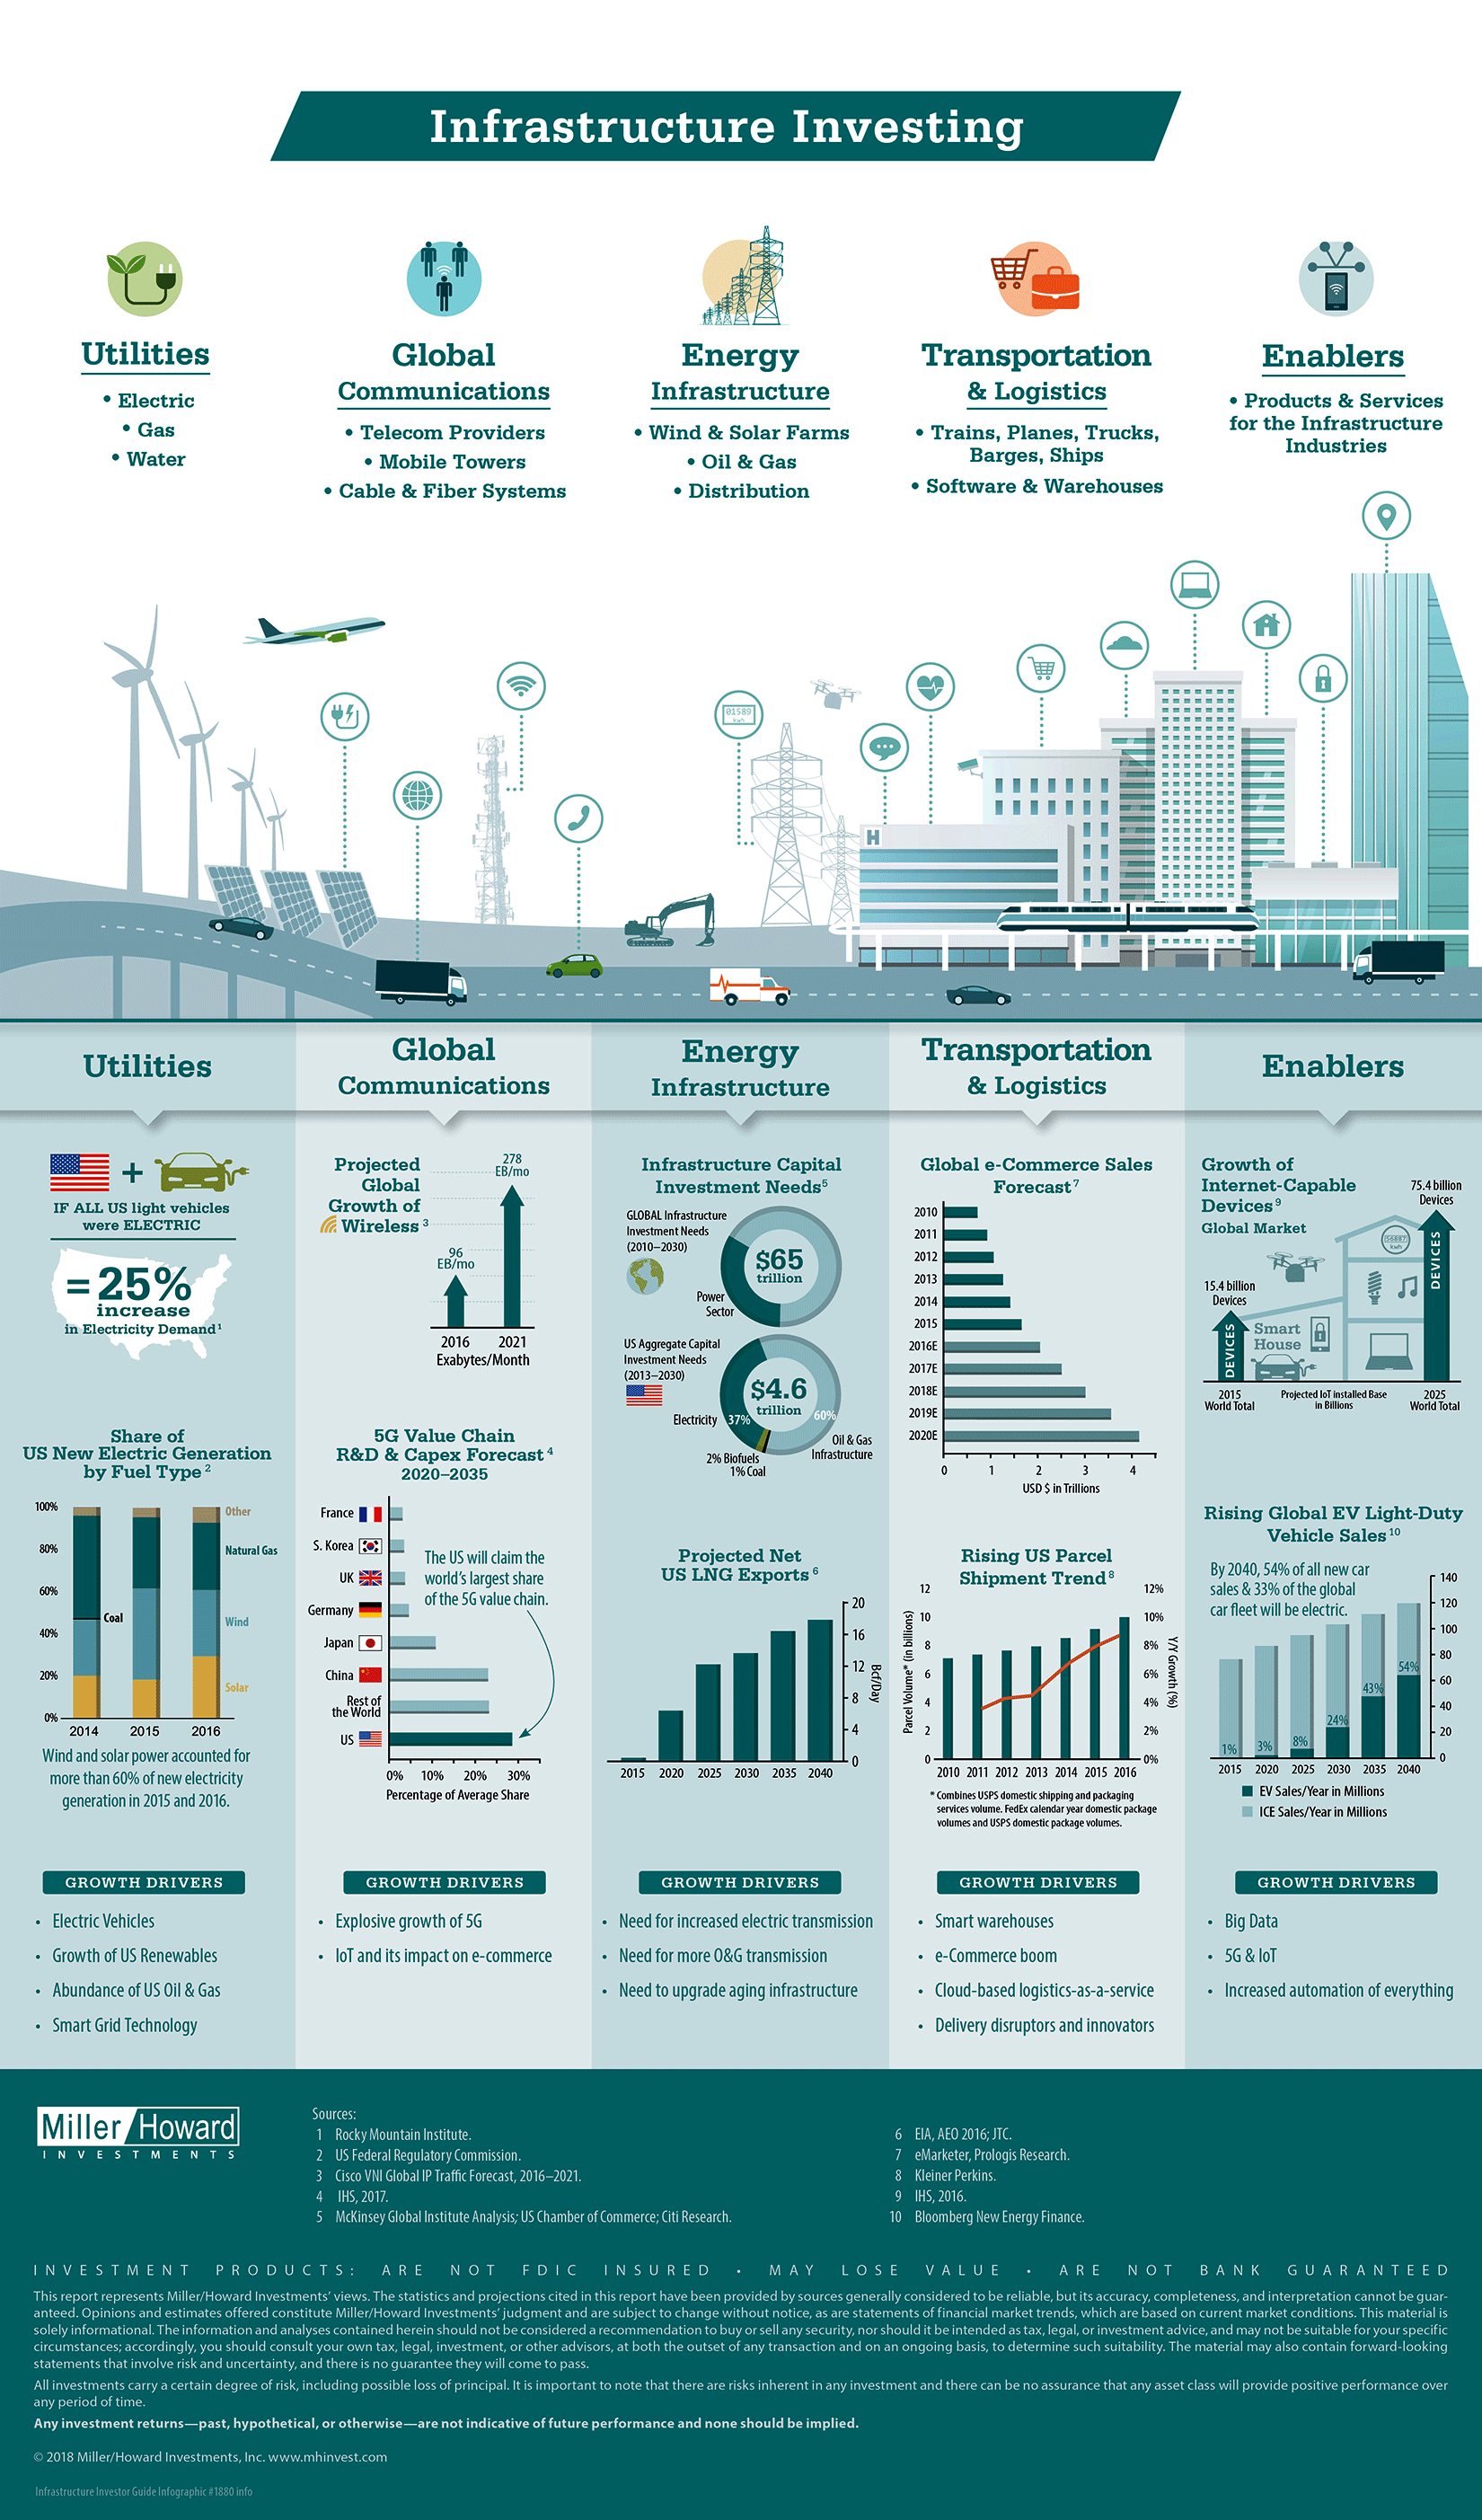 https://www.epi.org/publication/impact-of-infrastructure-investments/